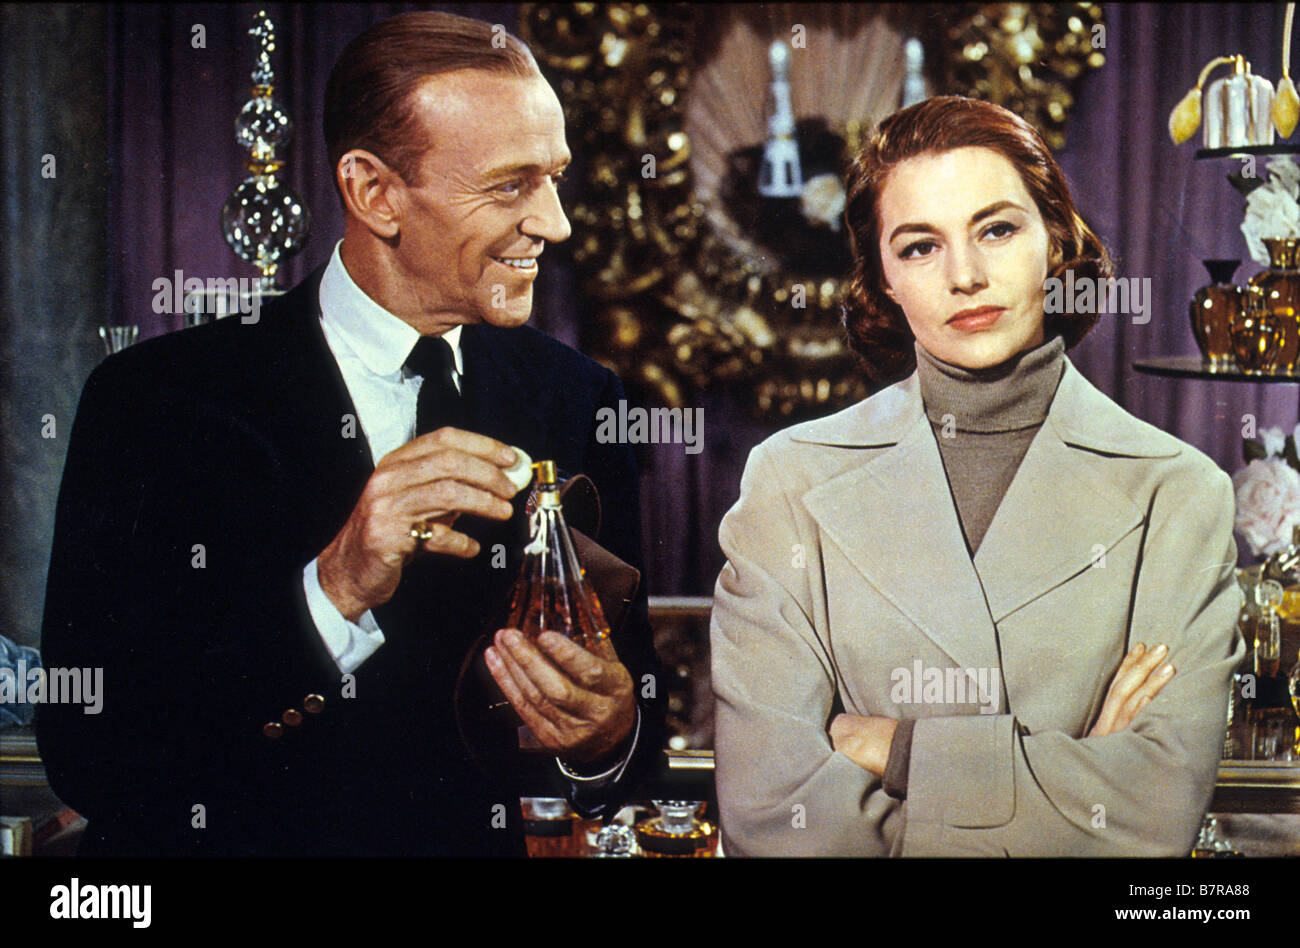 La belle de moscou Silk Stockings  Year: 1957 USA Fred Astaire, Cyd Charisse  Director: Rouben Mamoulian - Stock Image